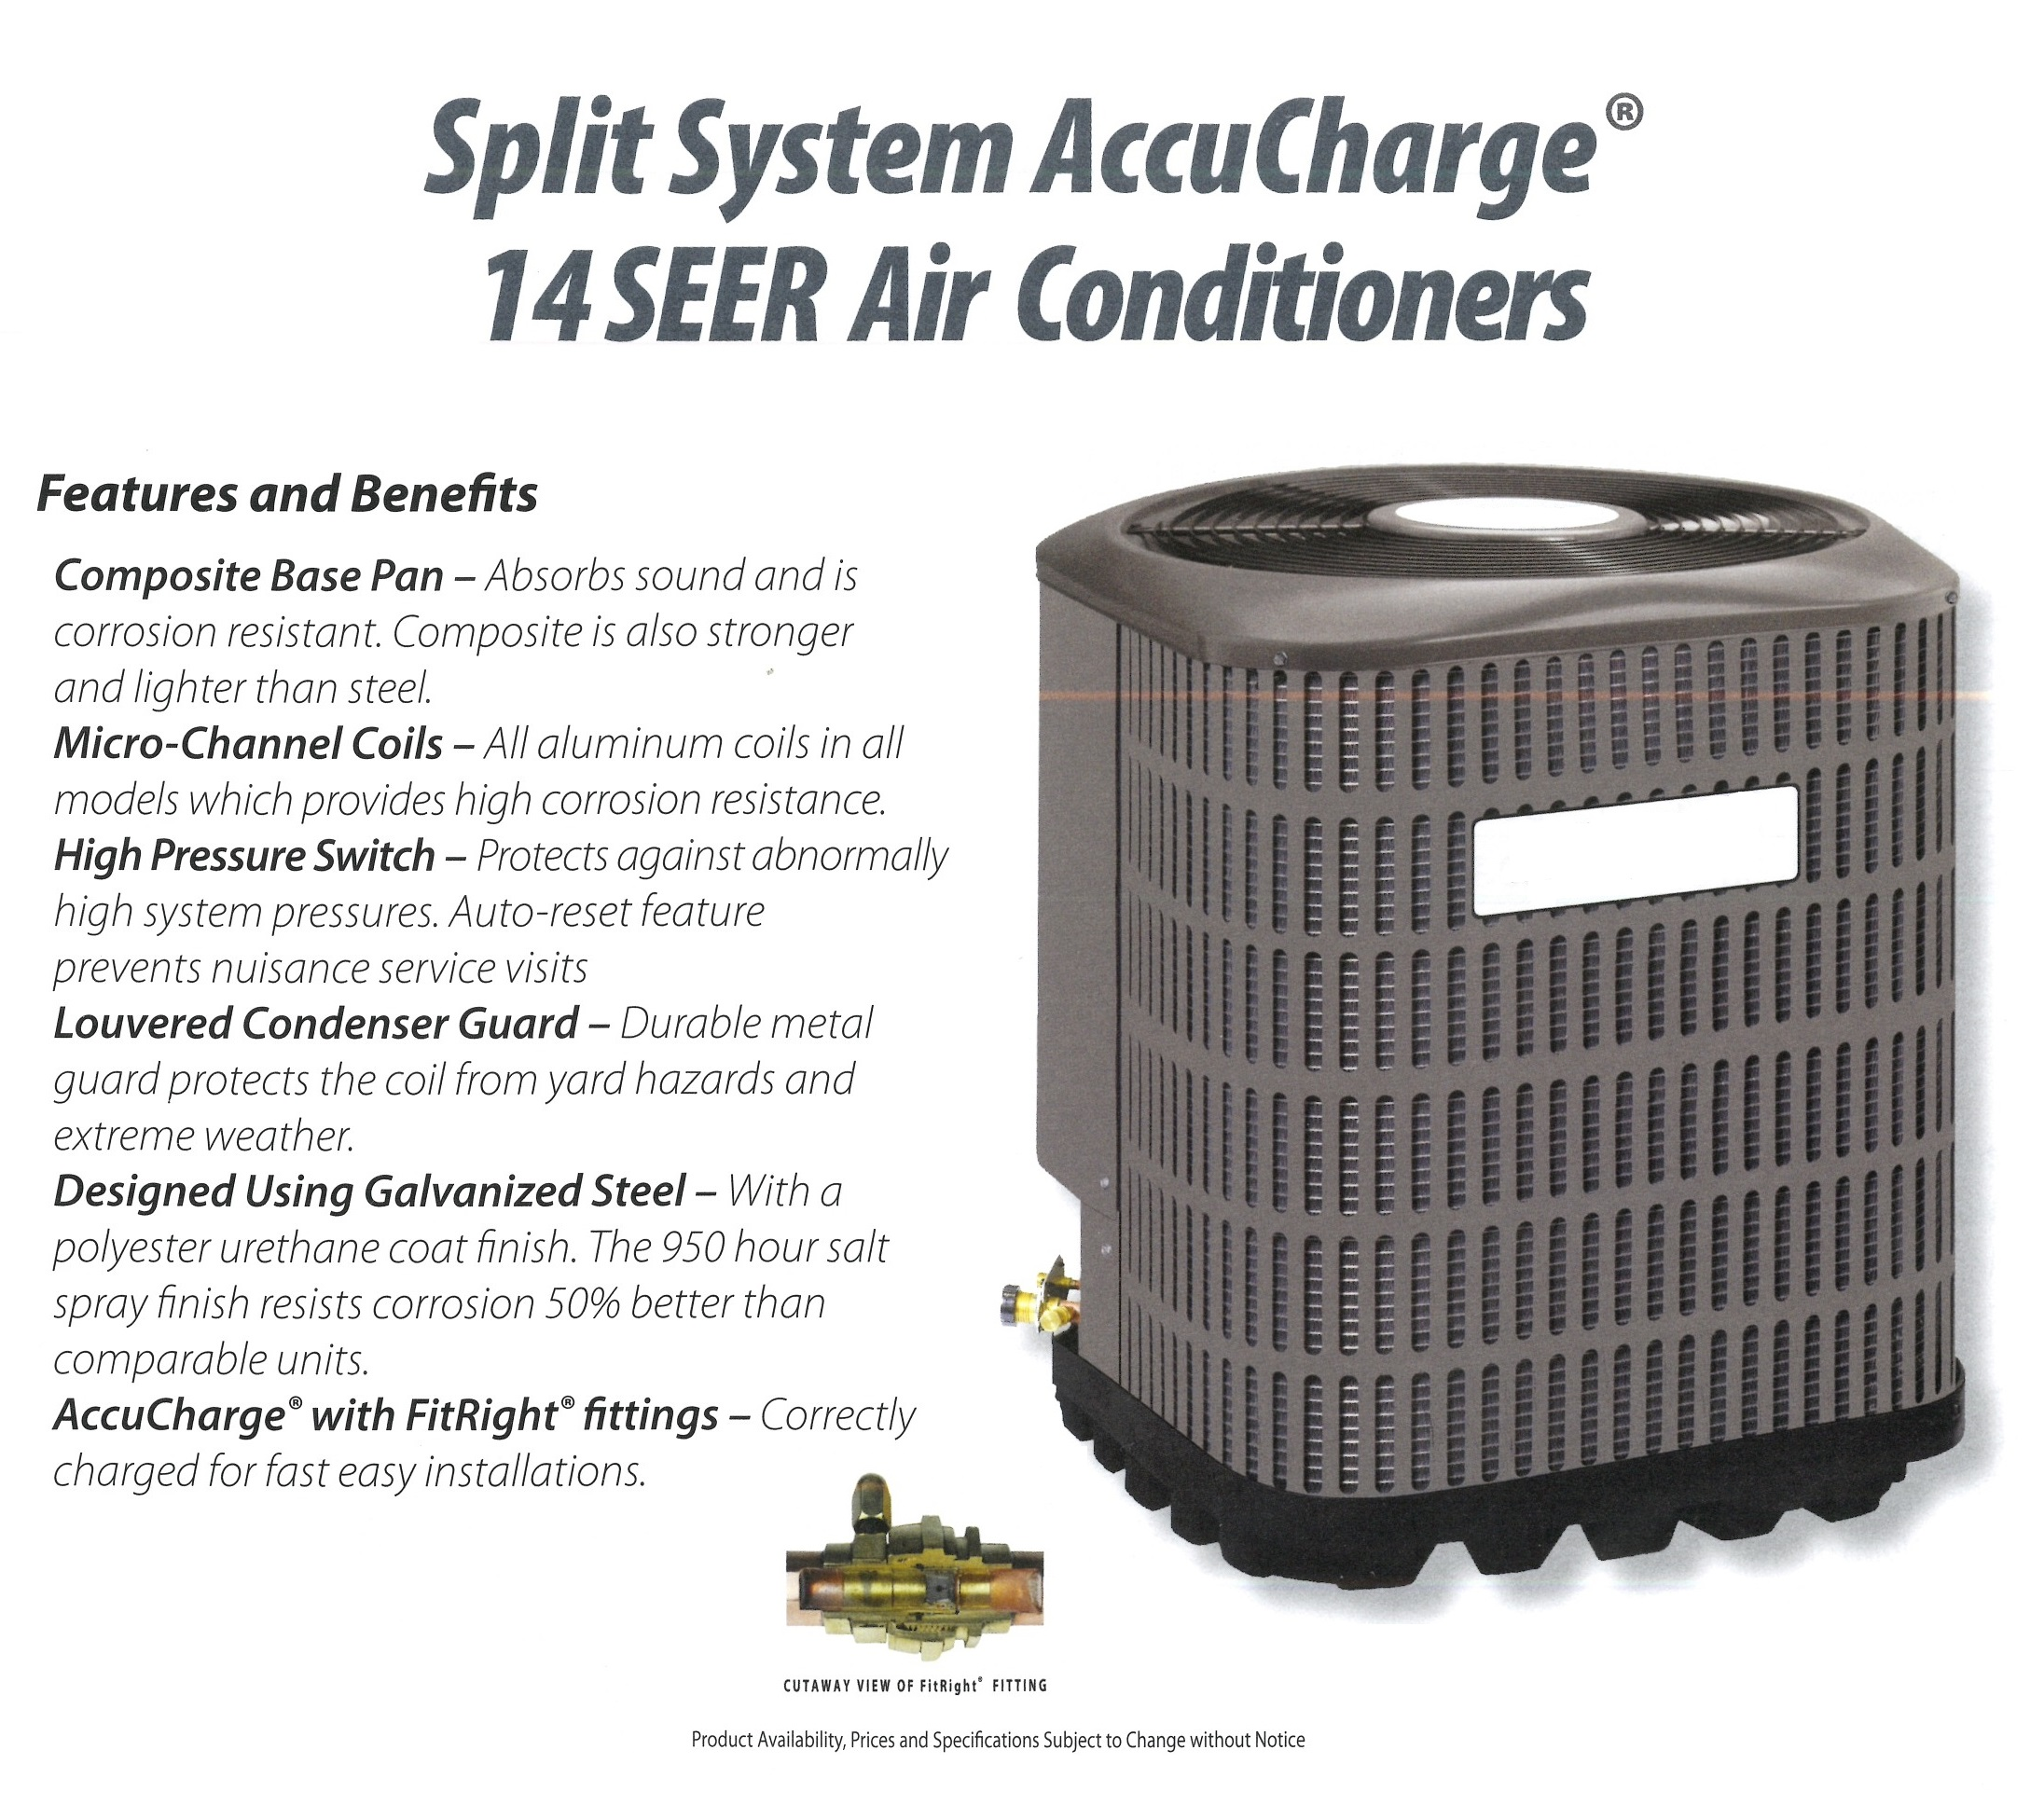 Split System AccuCharge 14 SEER Air Conditioners